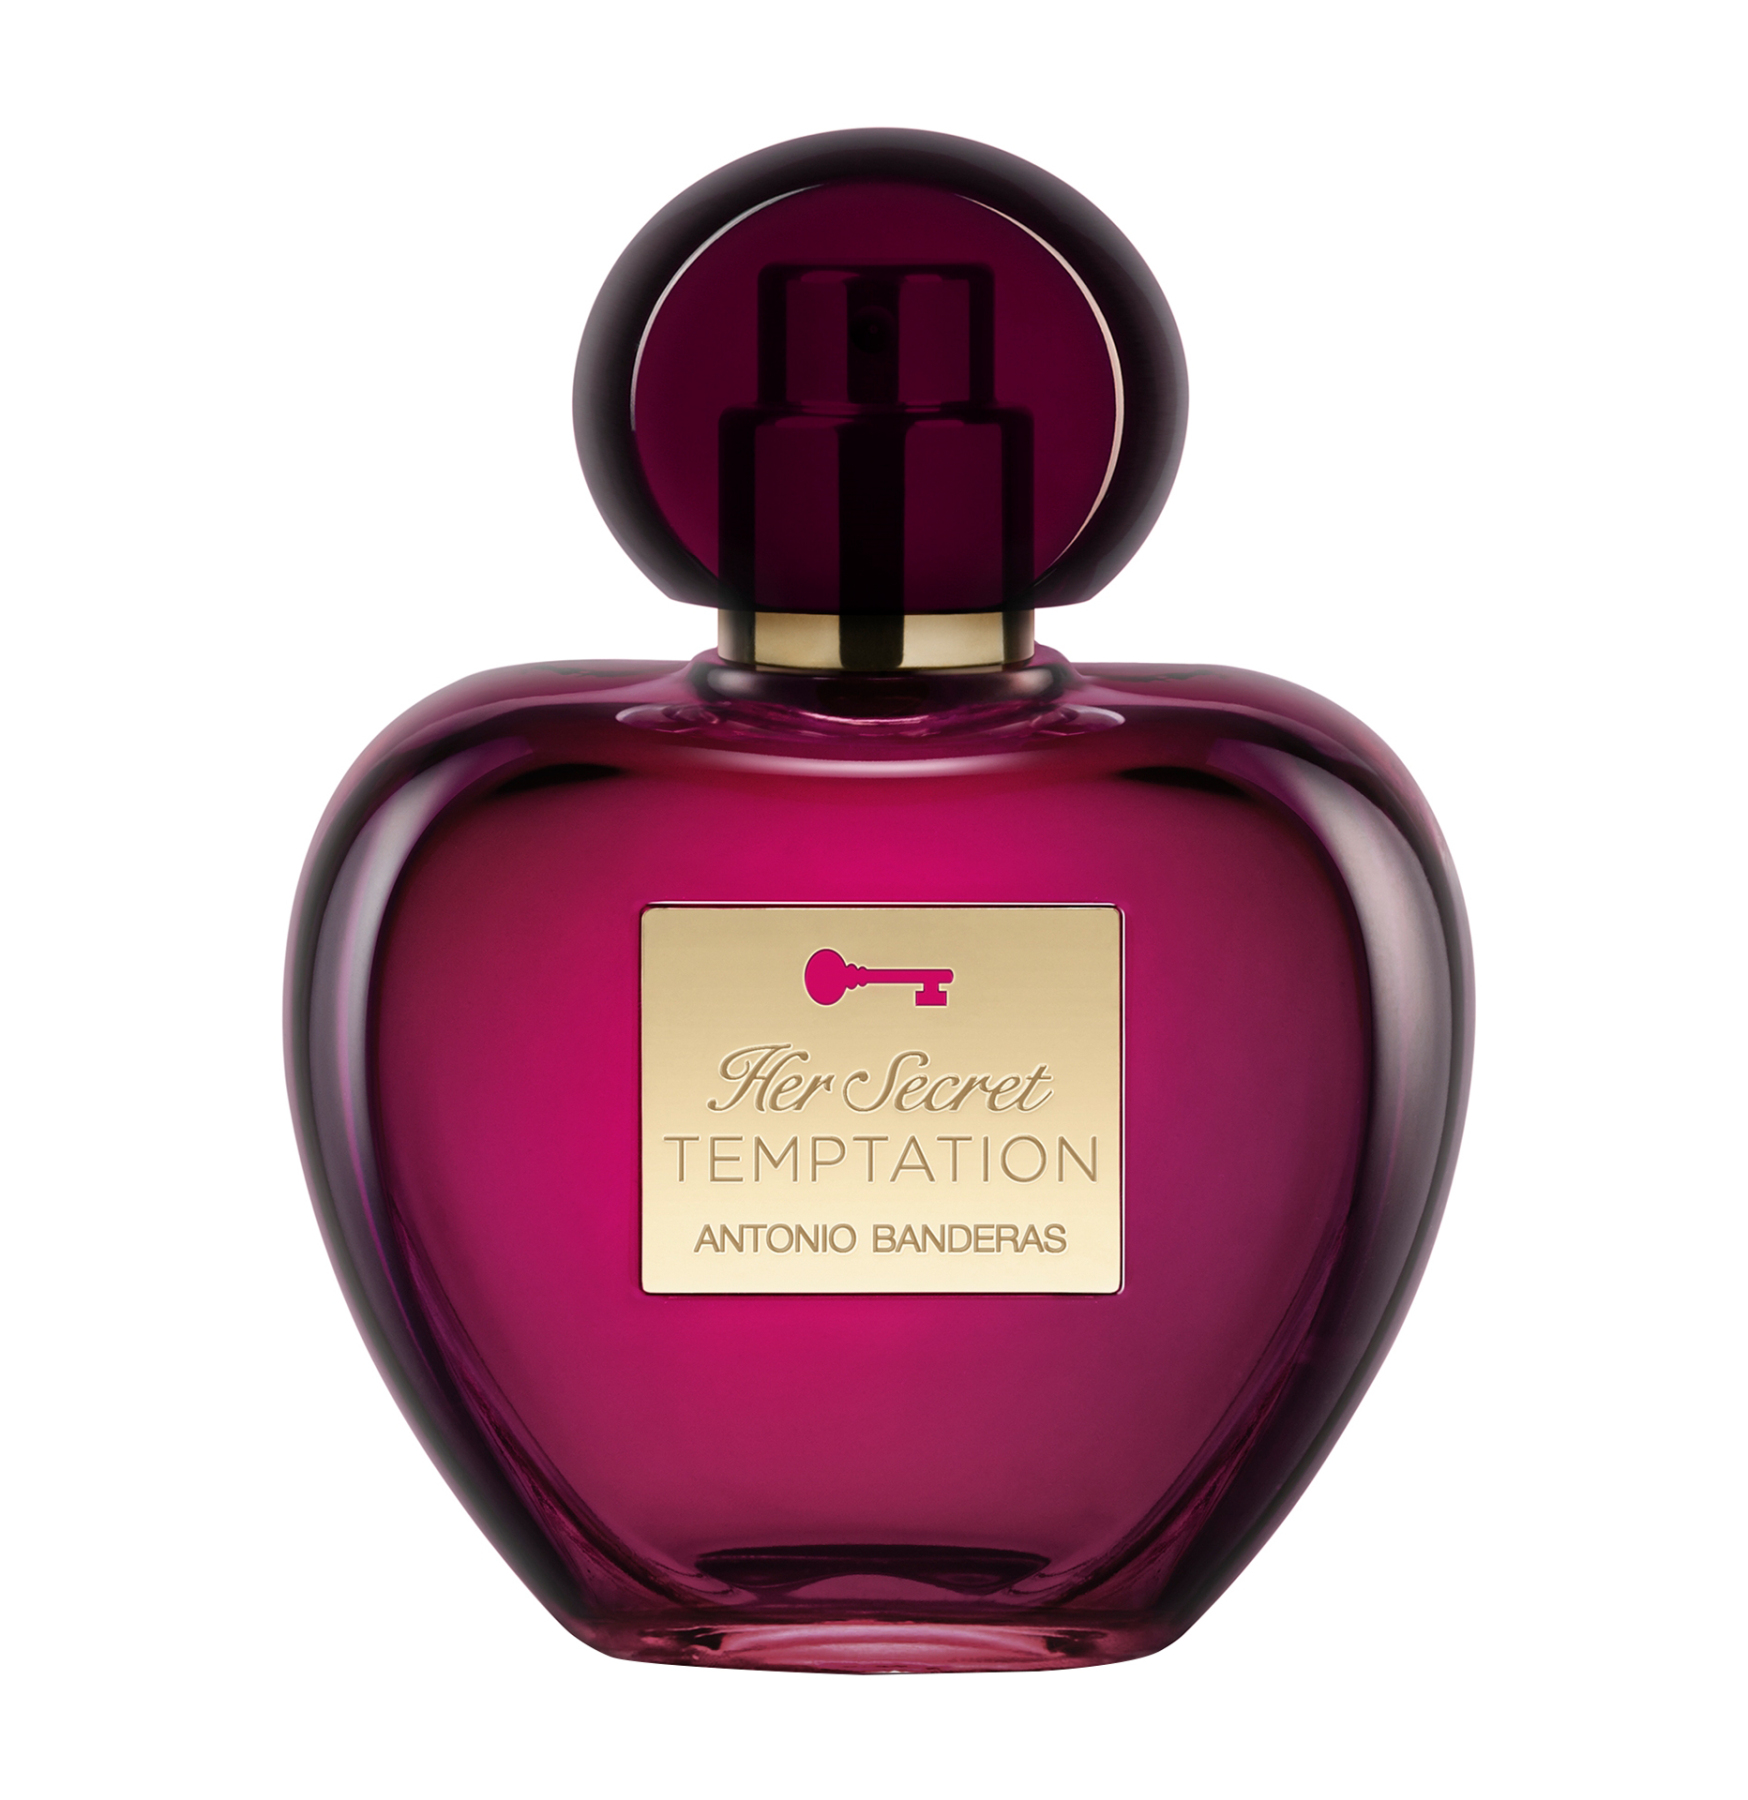 Perfume Antonio Banderas Her Secret Temptation Eau De Toilette Perfume 50 Ml